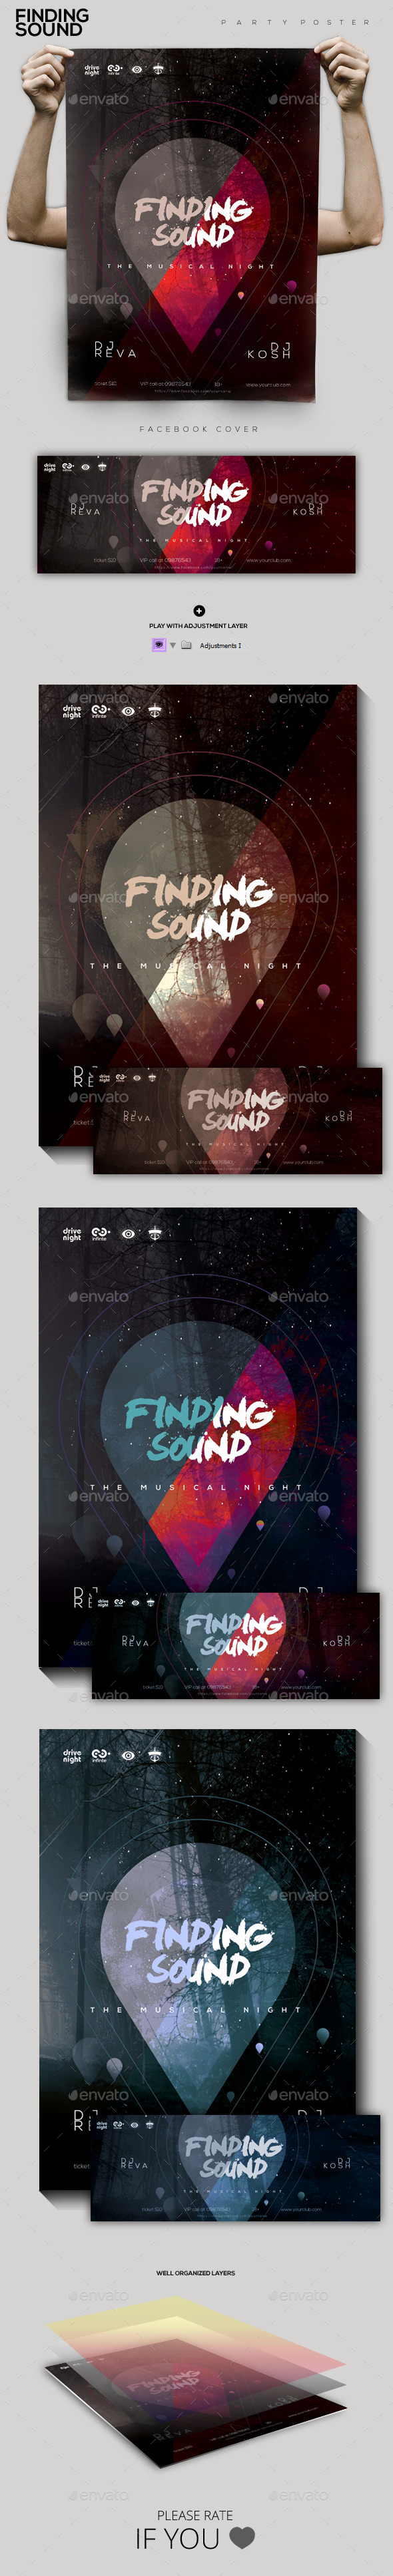 Finding Sound Party Flyer/Poster - Clubs & Parties Events